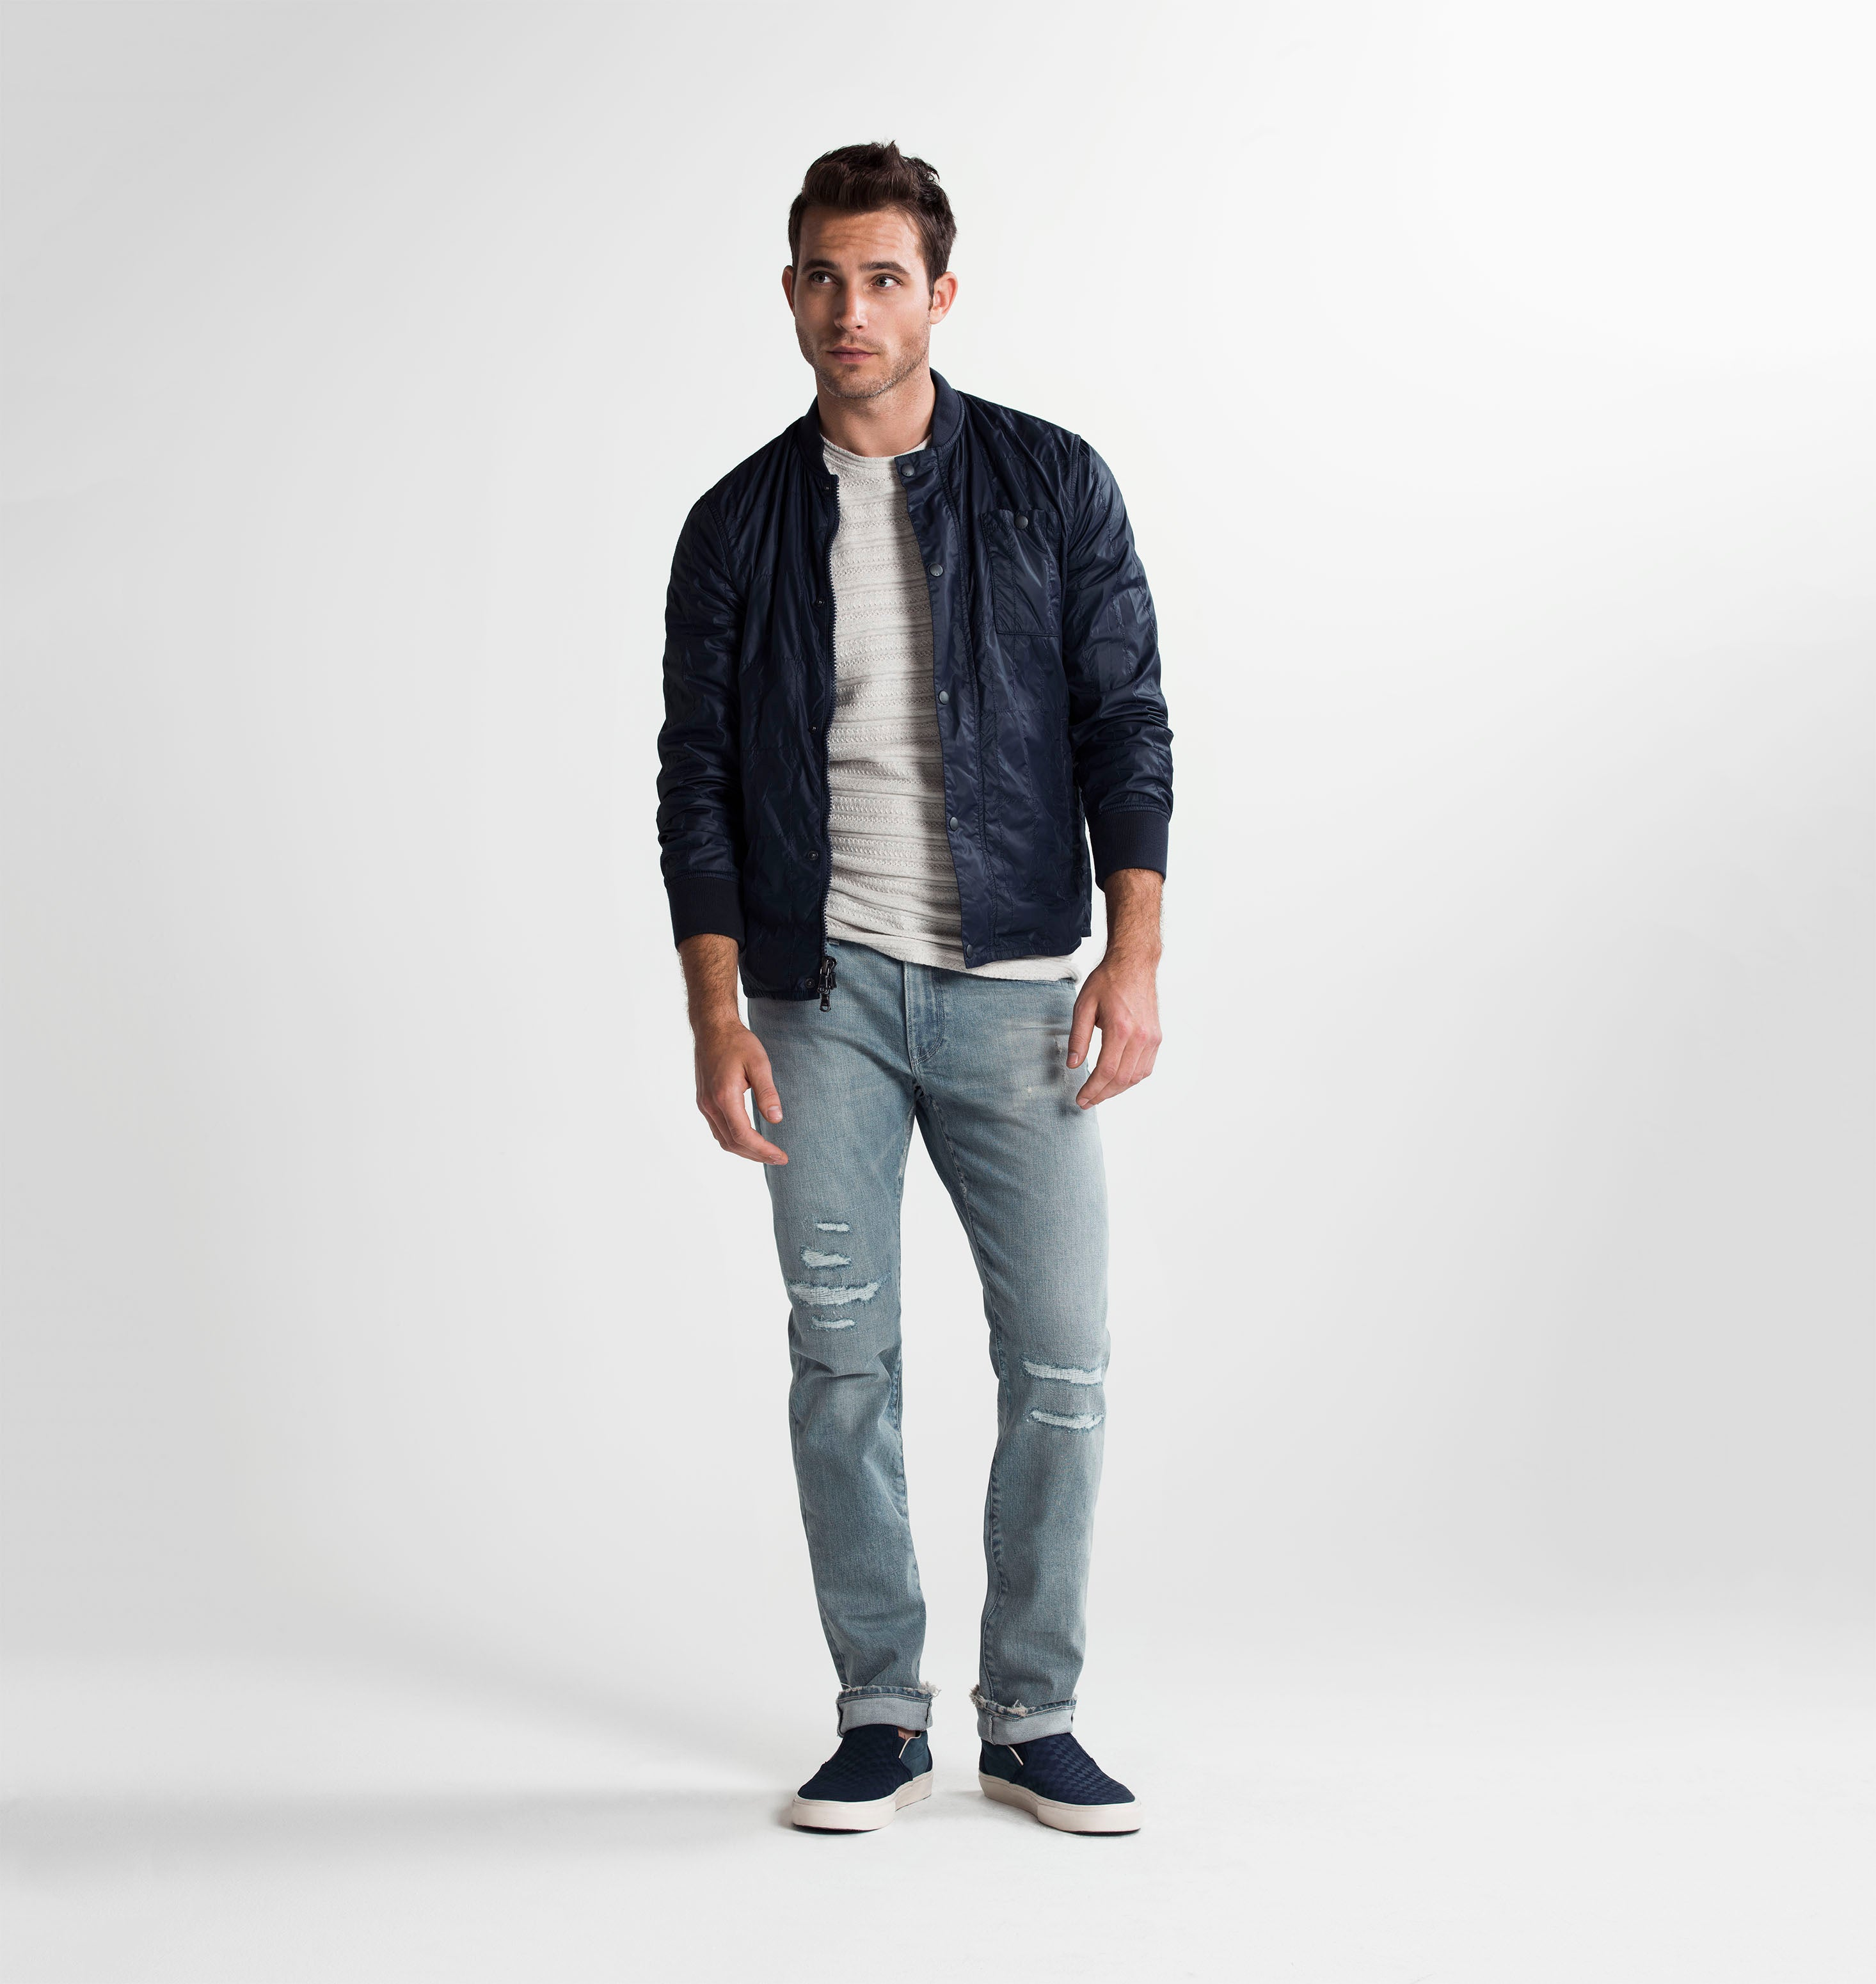 Brown haired athletic model standing and slightly bending his left knee while wearing a navy bomber jacket rolled up at his sleeves with a grey t shirt and S.M.N Studio's Bond in Vernon Repair jeans. The jeans are a slim straight jean in a light blue wash with repaired distressing at the knees and subtle rip details on the hems.